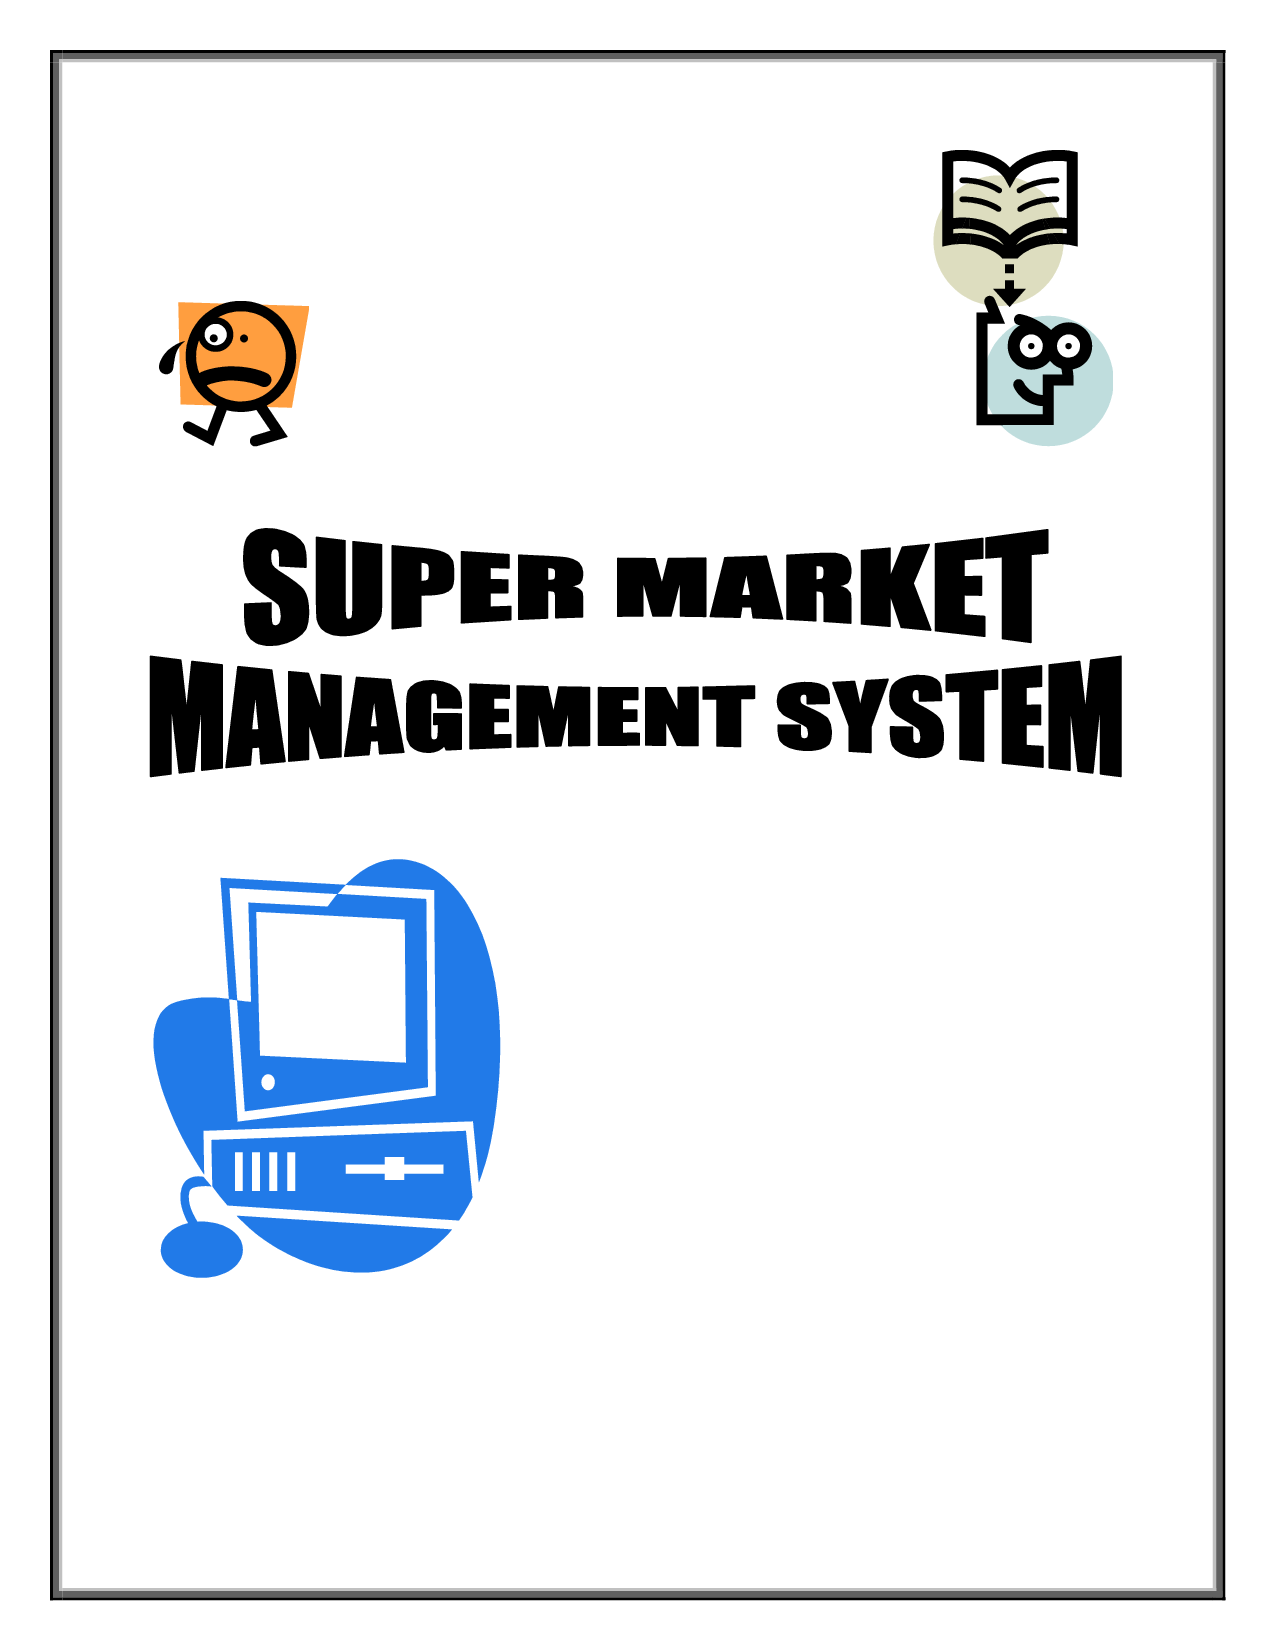 Online stock trading system mini project